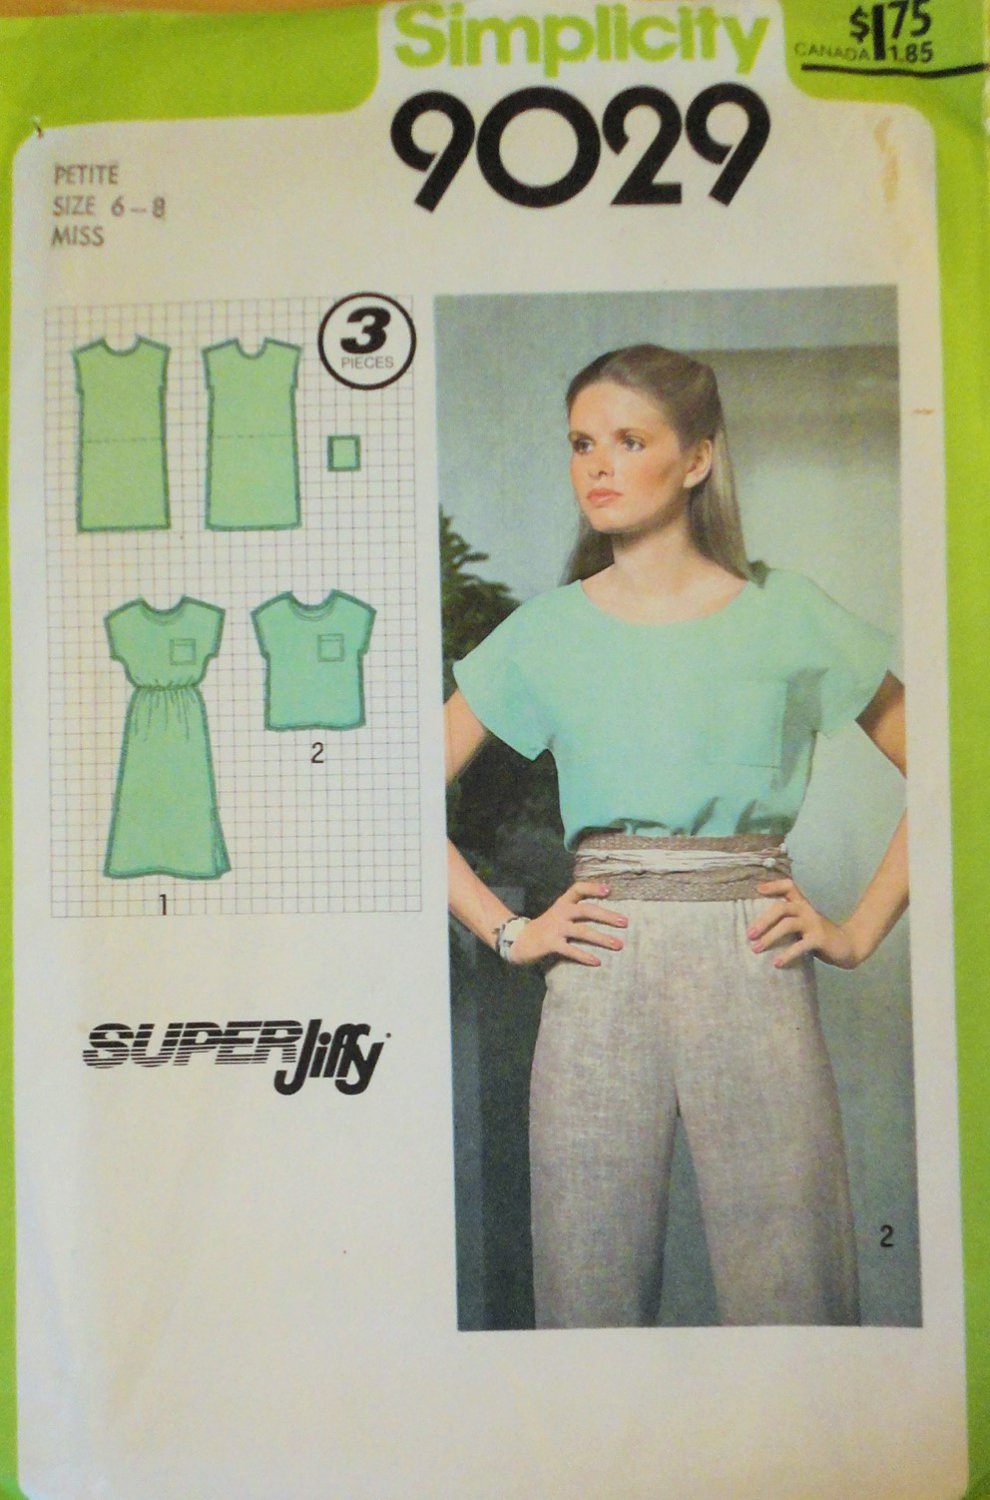 Simplicity 9029 Womens' Pull Over Dress or Top Sewing Pattern Size 6-8